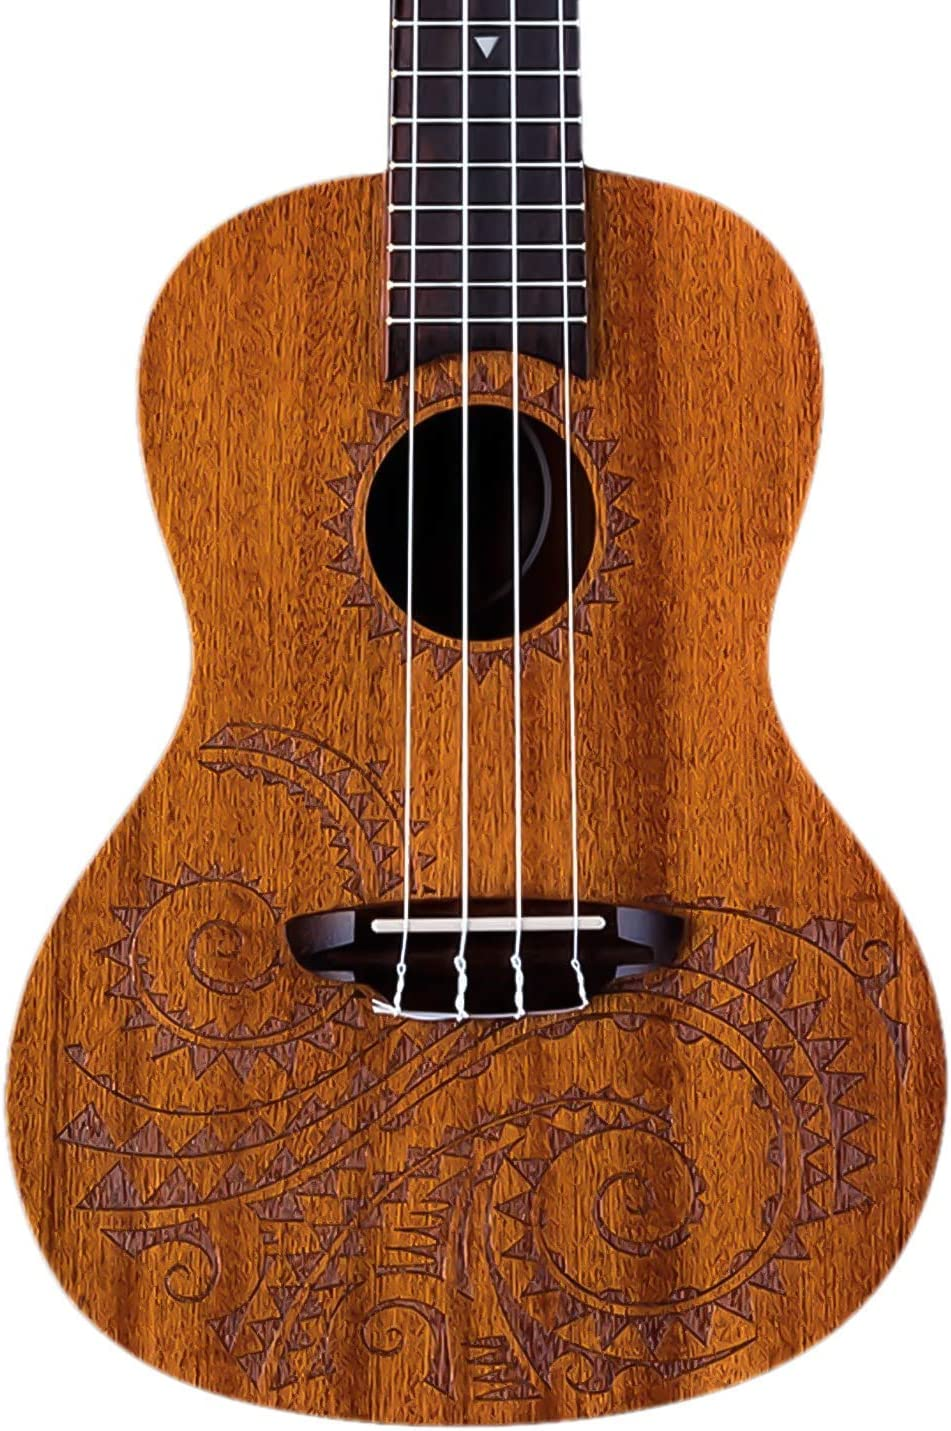 Top 10 Best Ukulele for Kids (2020 Reviews & Buying Guide) 7